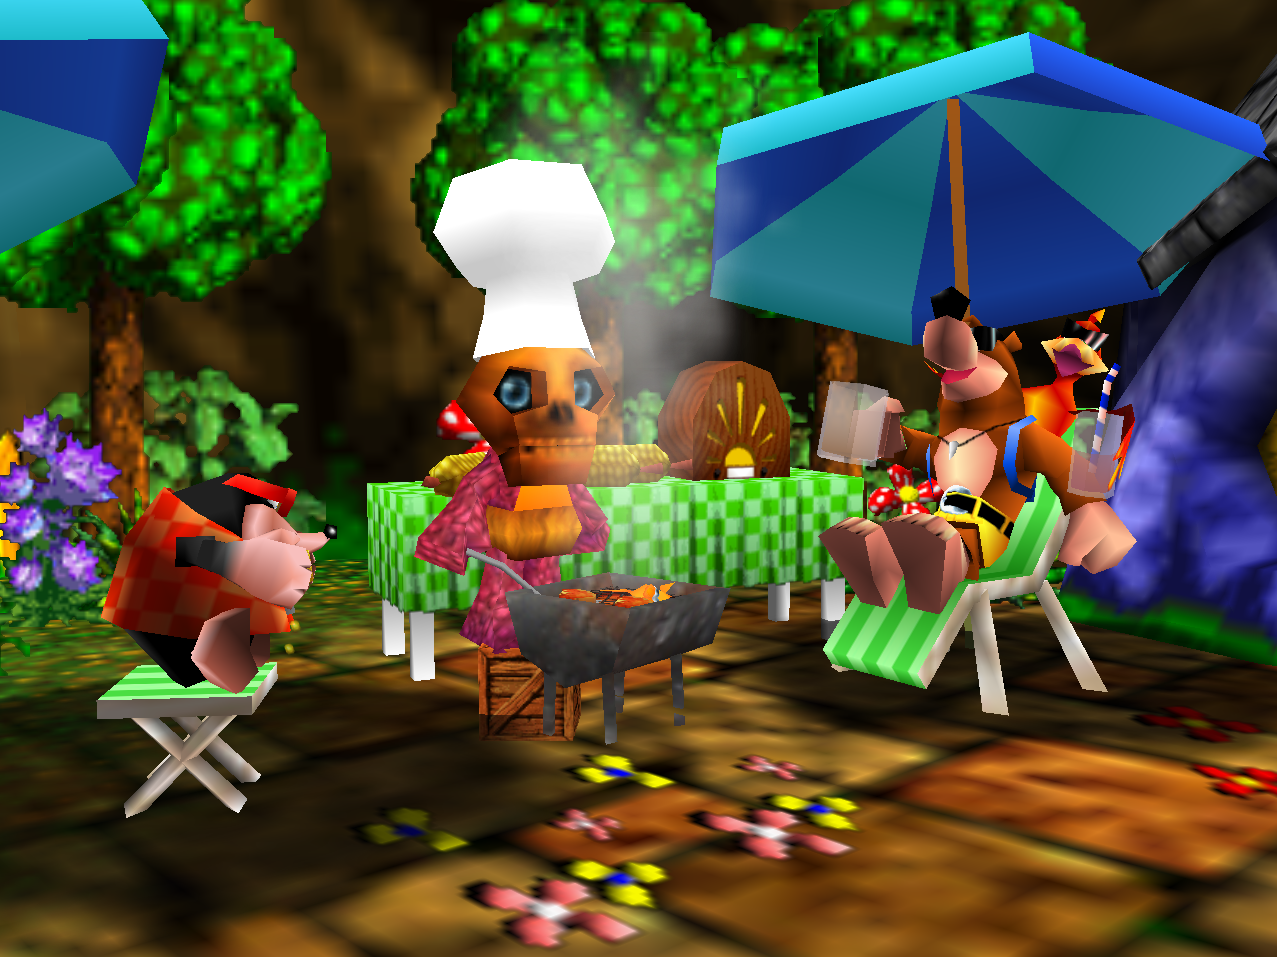 banjo kazooie - photo #29